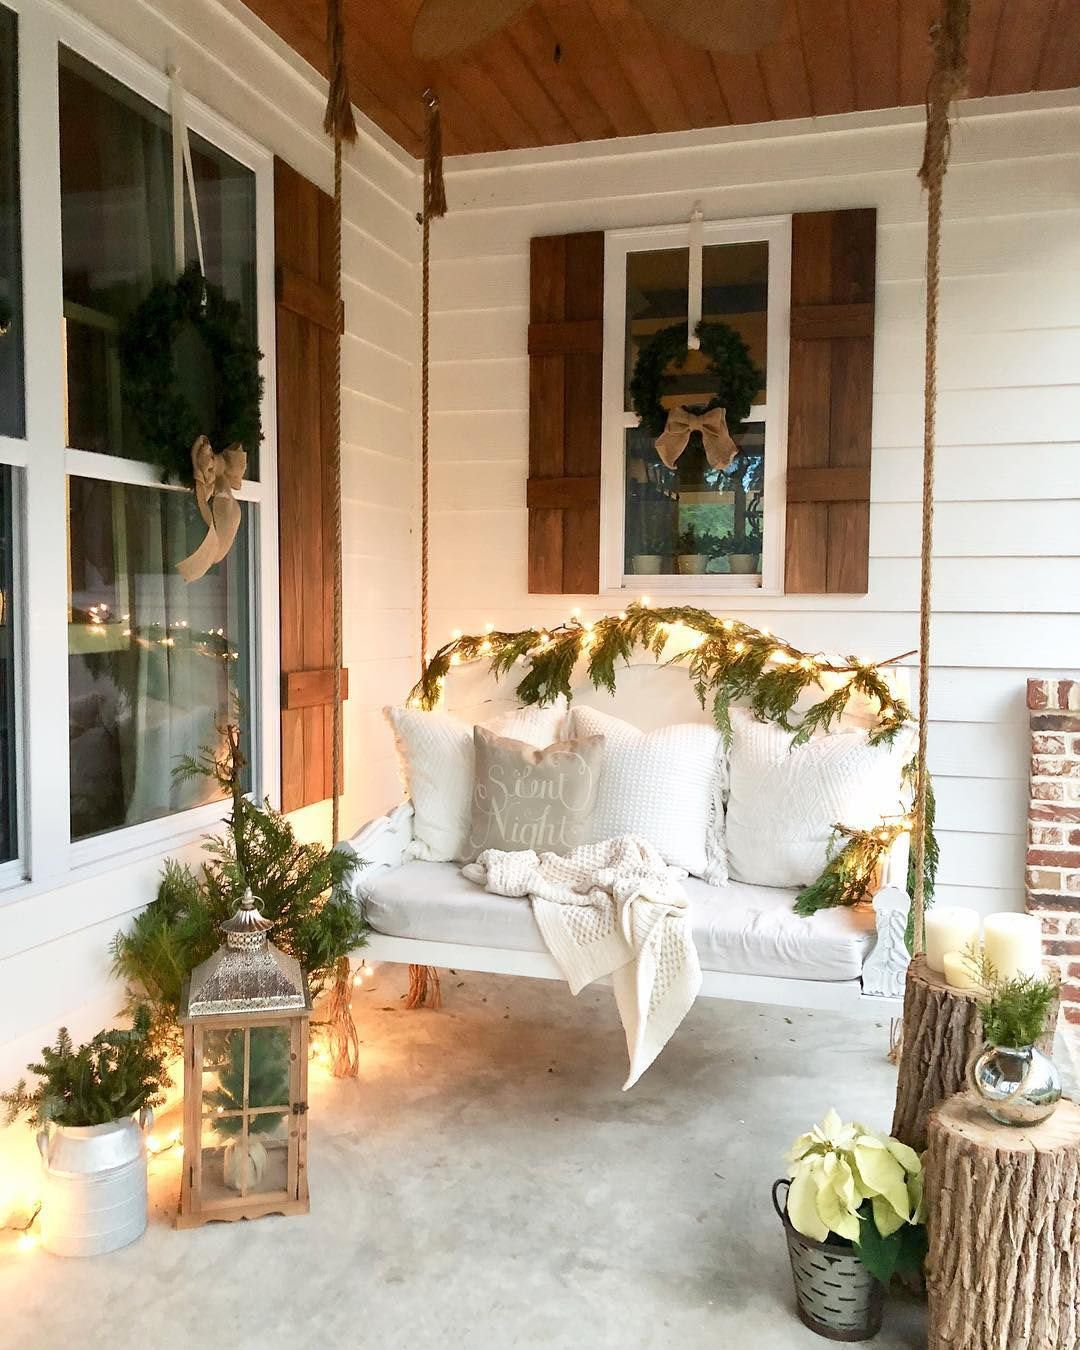 Free DIY Porch Swing Plans & Ideas to Chill in Your Front